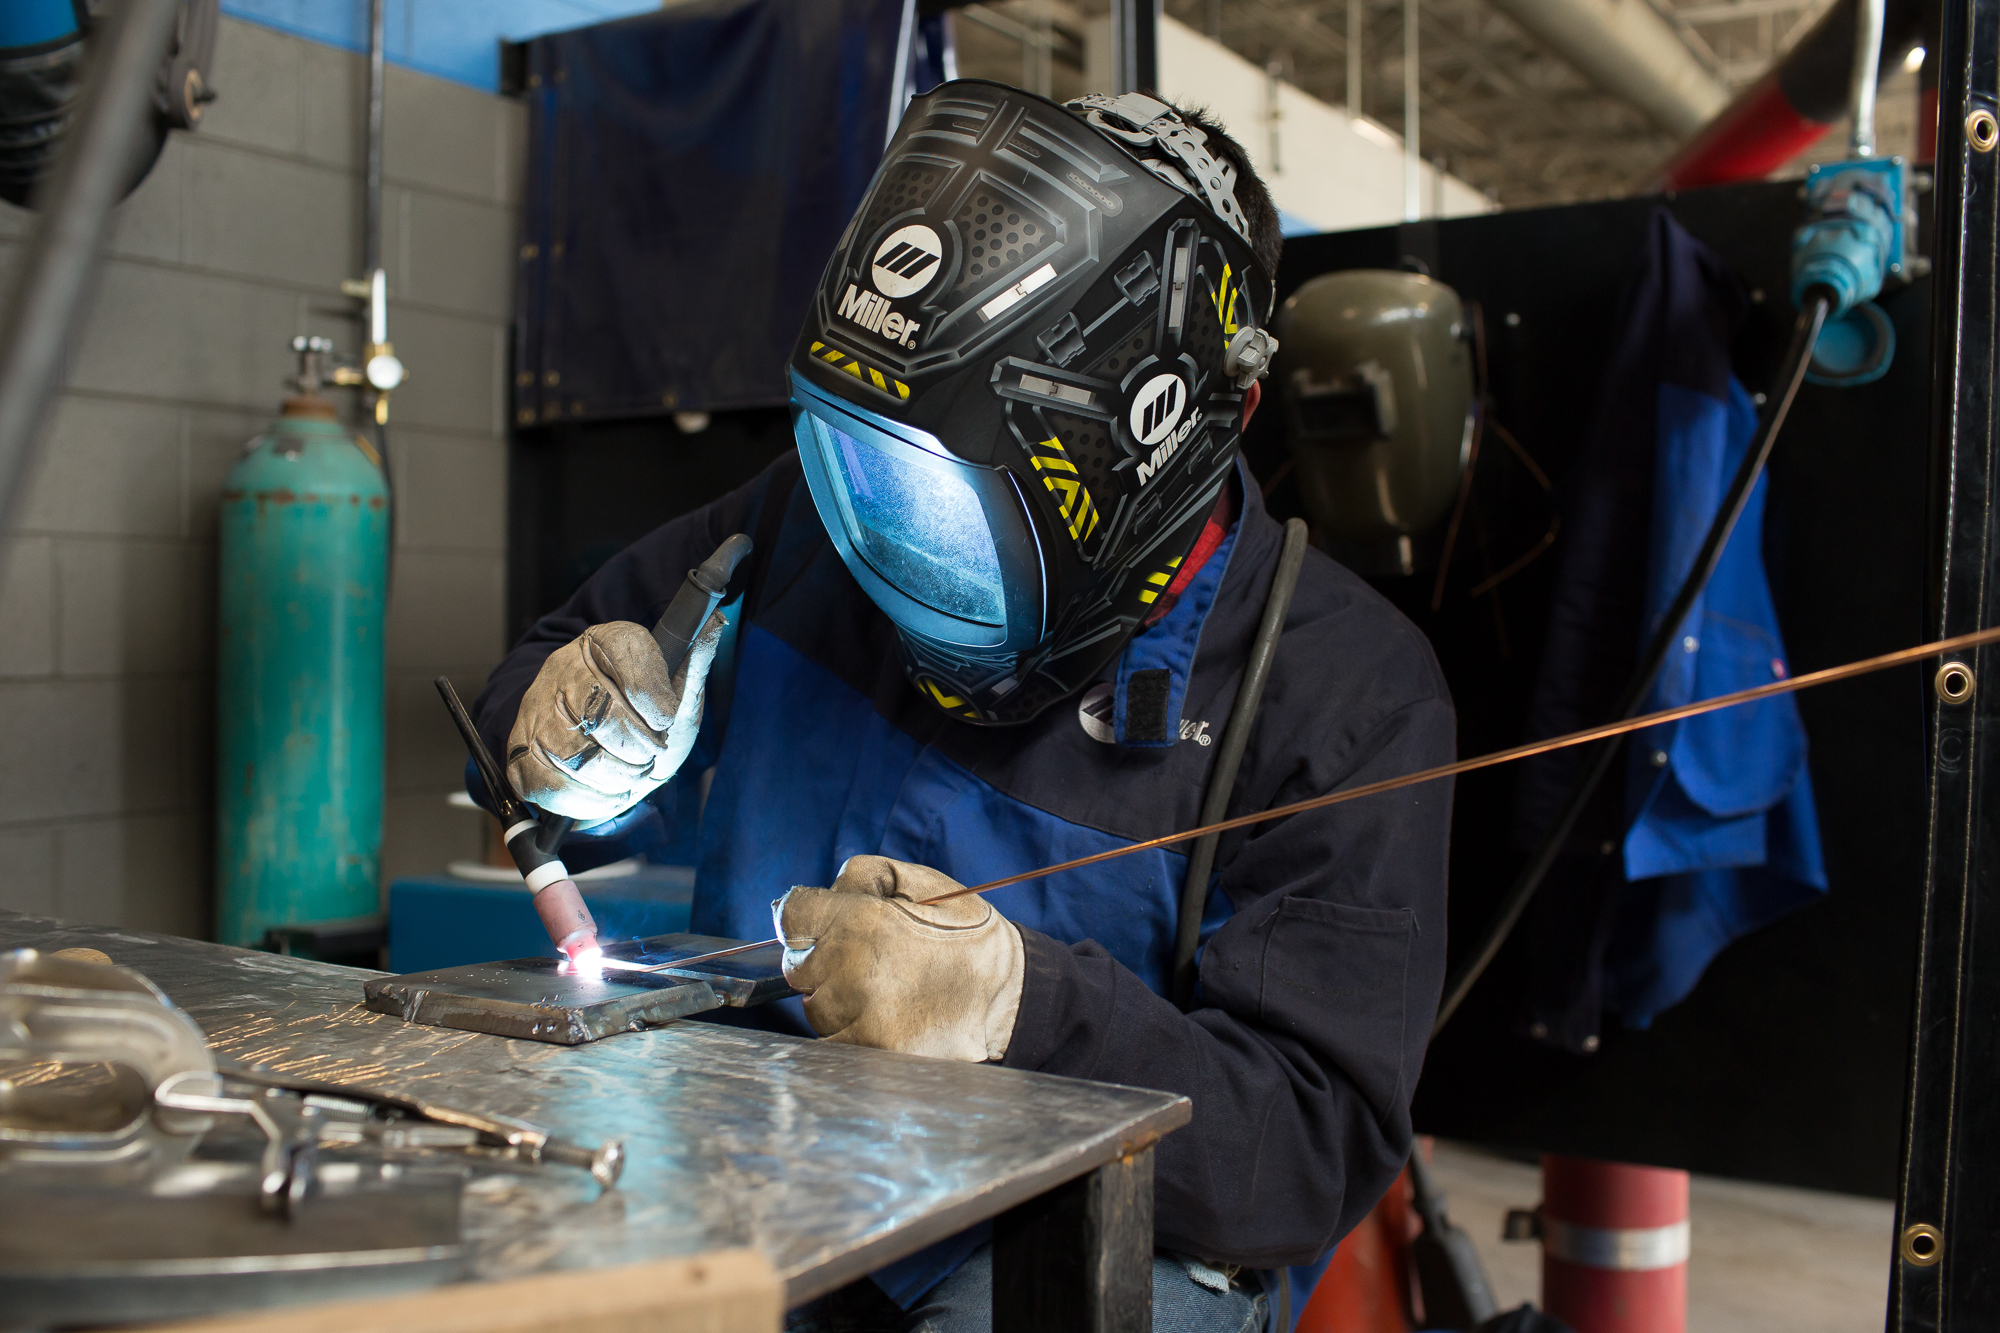 Central Surry High junior Cesar Landeros welds metal plates together during a class assignment at Surry Community College.